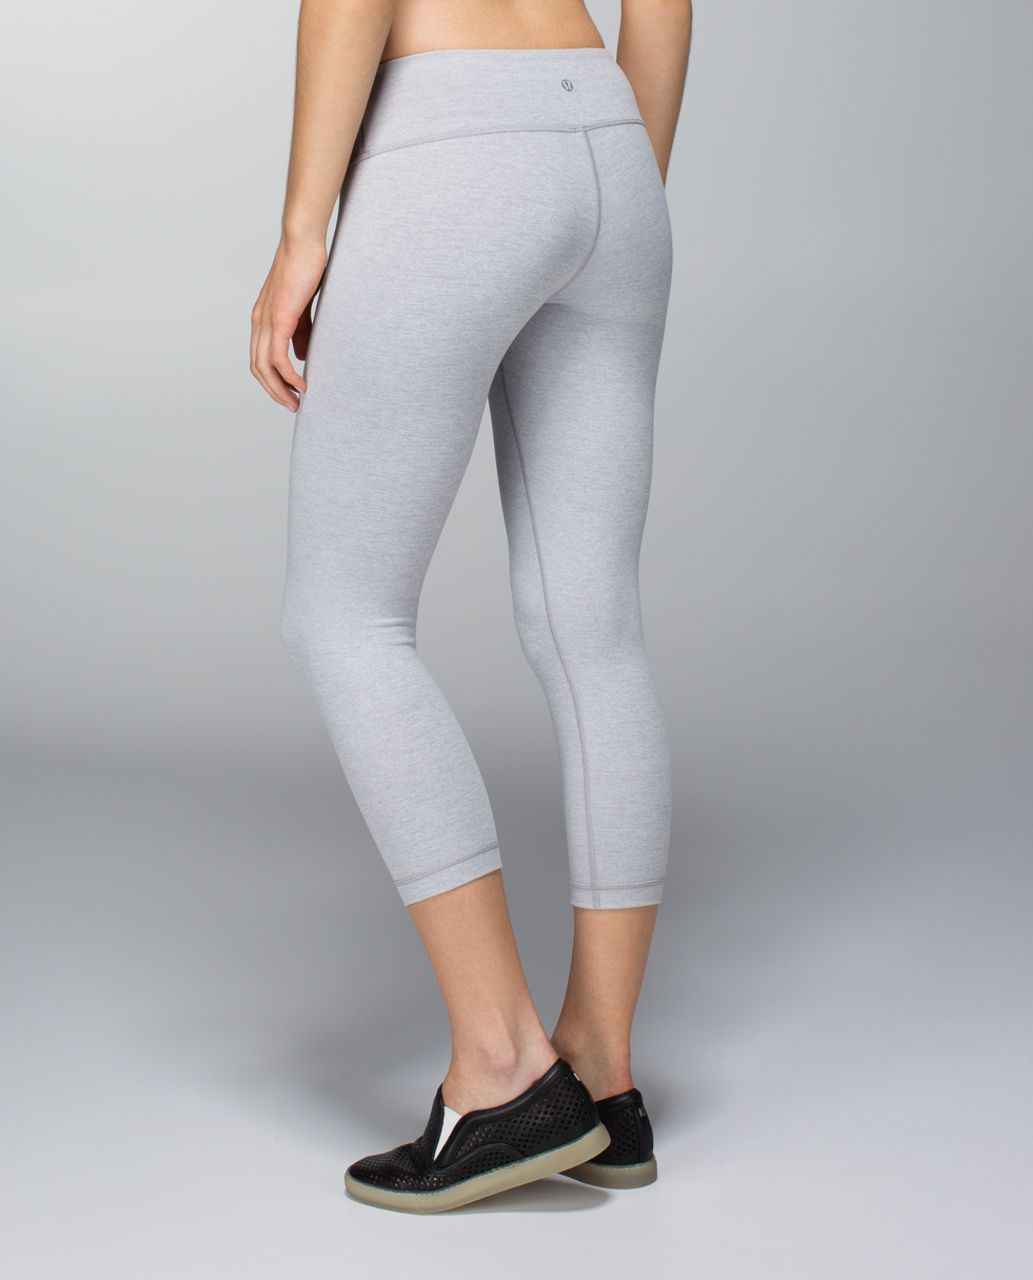 Lululemon Wunder Under Crop - Heathered Medium Grey